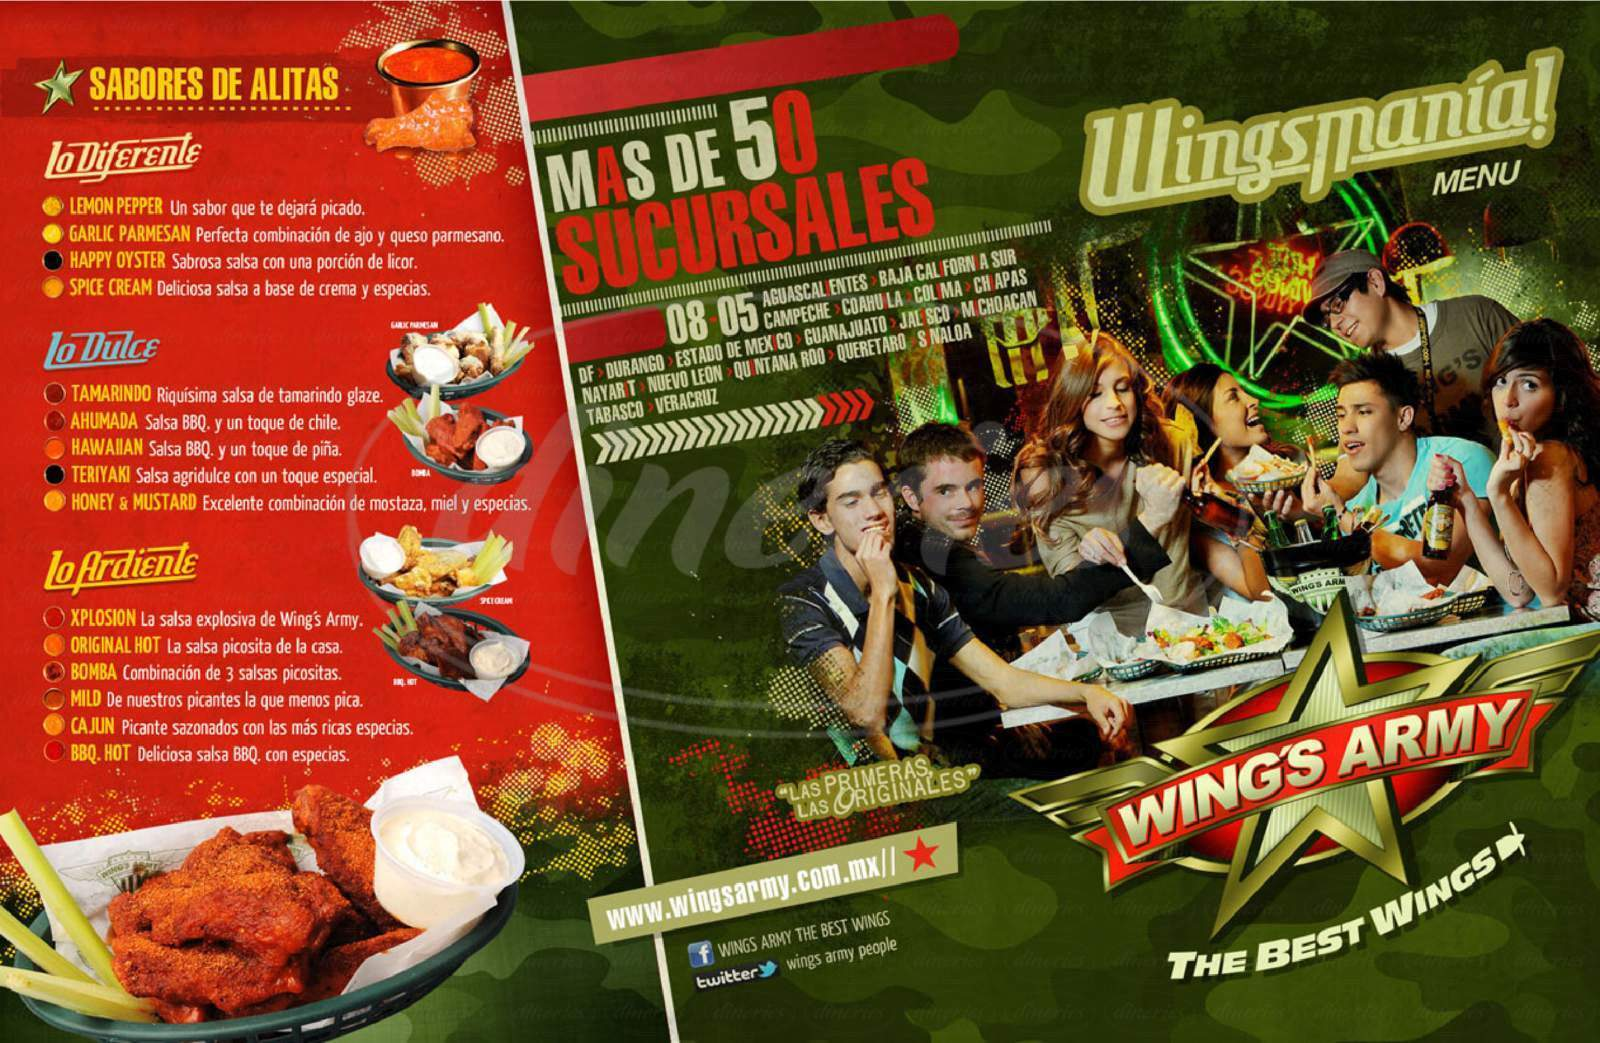 menu for WINGS ARMY